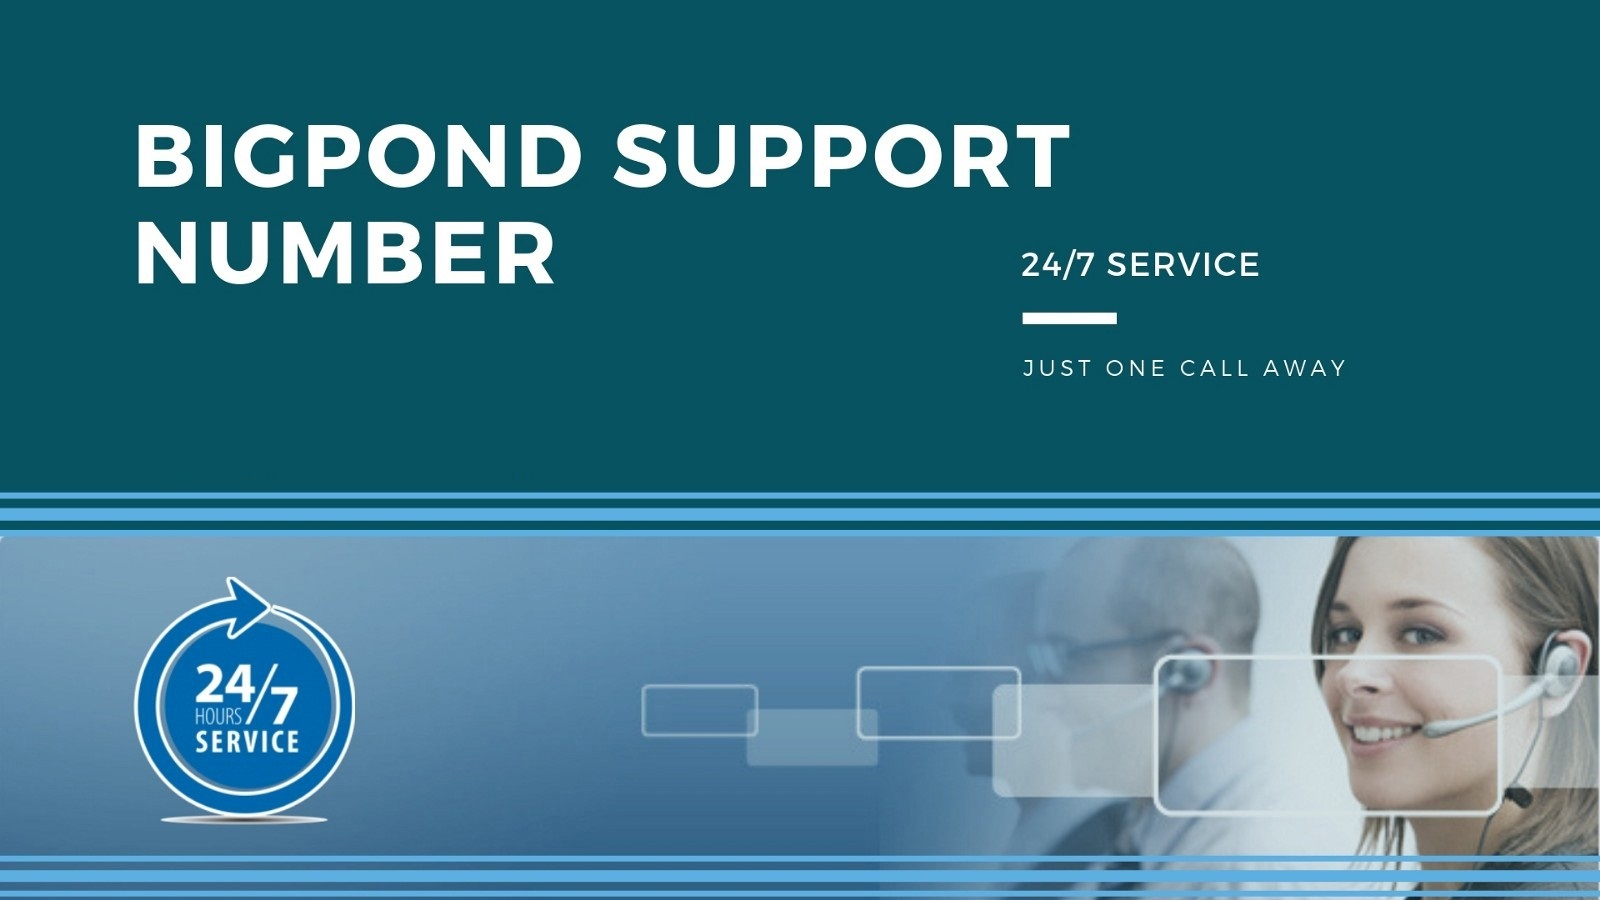 Bigpond Contact Number